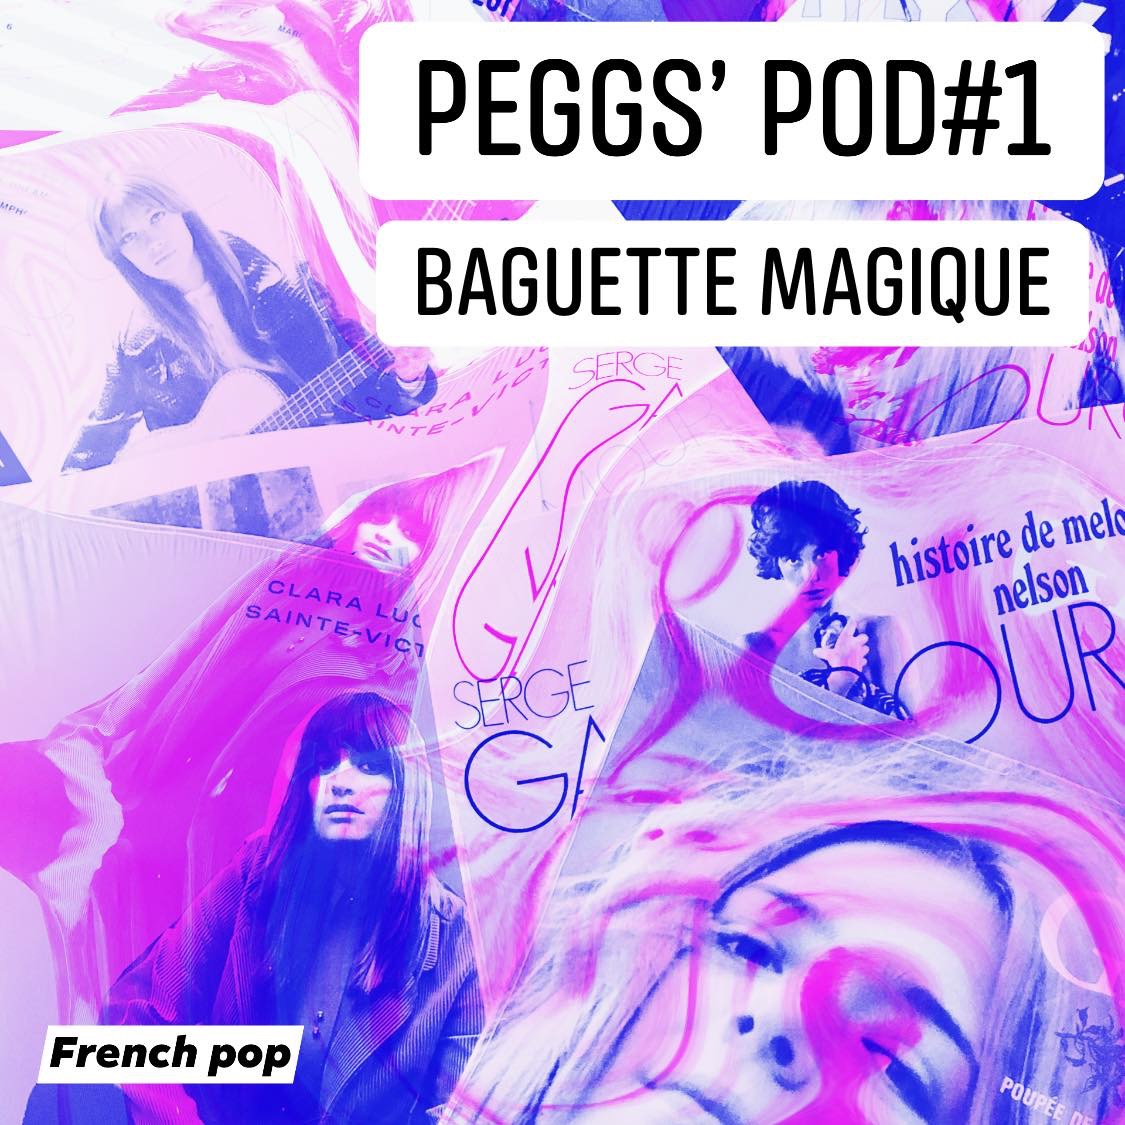 PEGGS PODCASTS